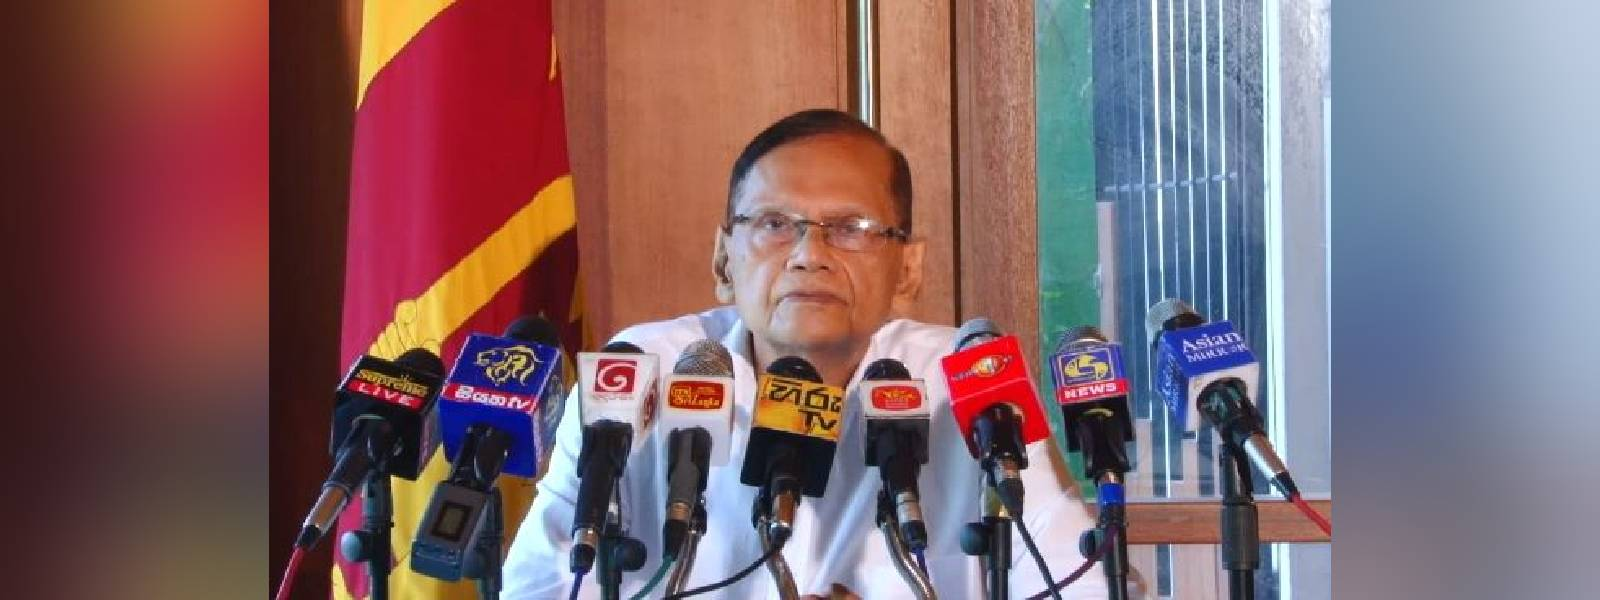 Plans to reopen schools by September quashed: Education Minister